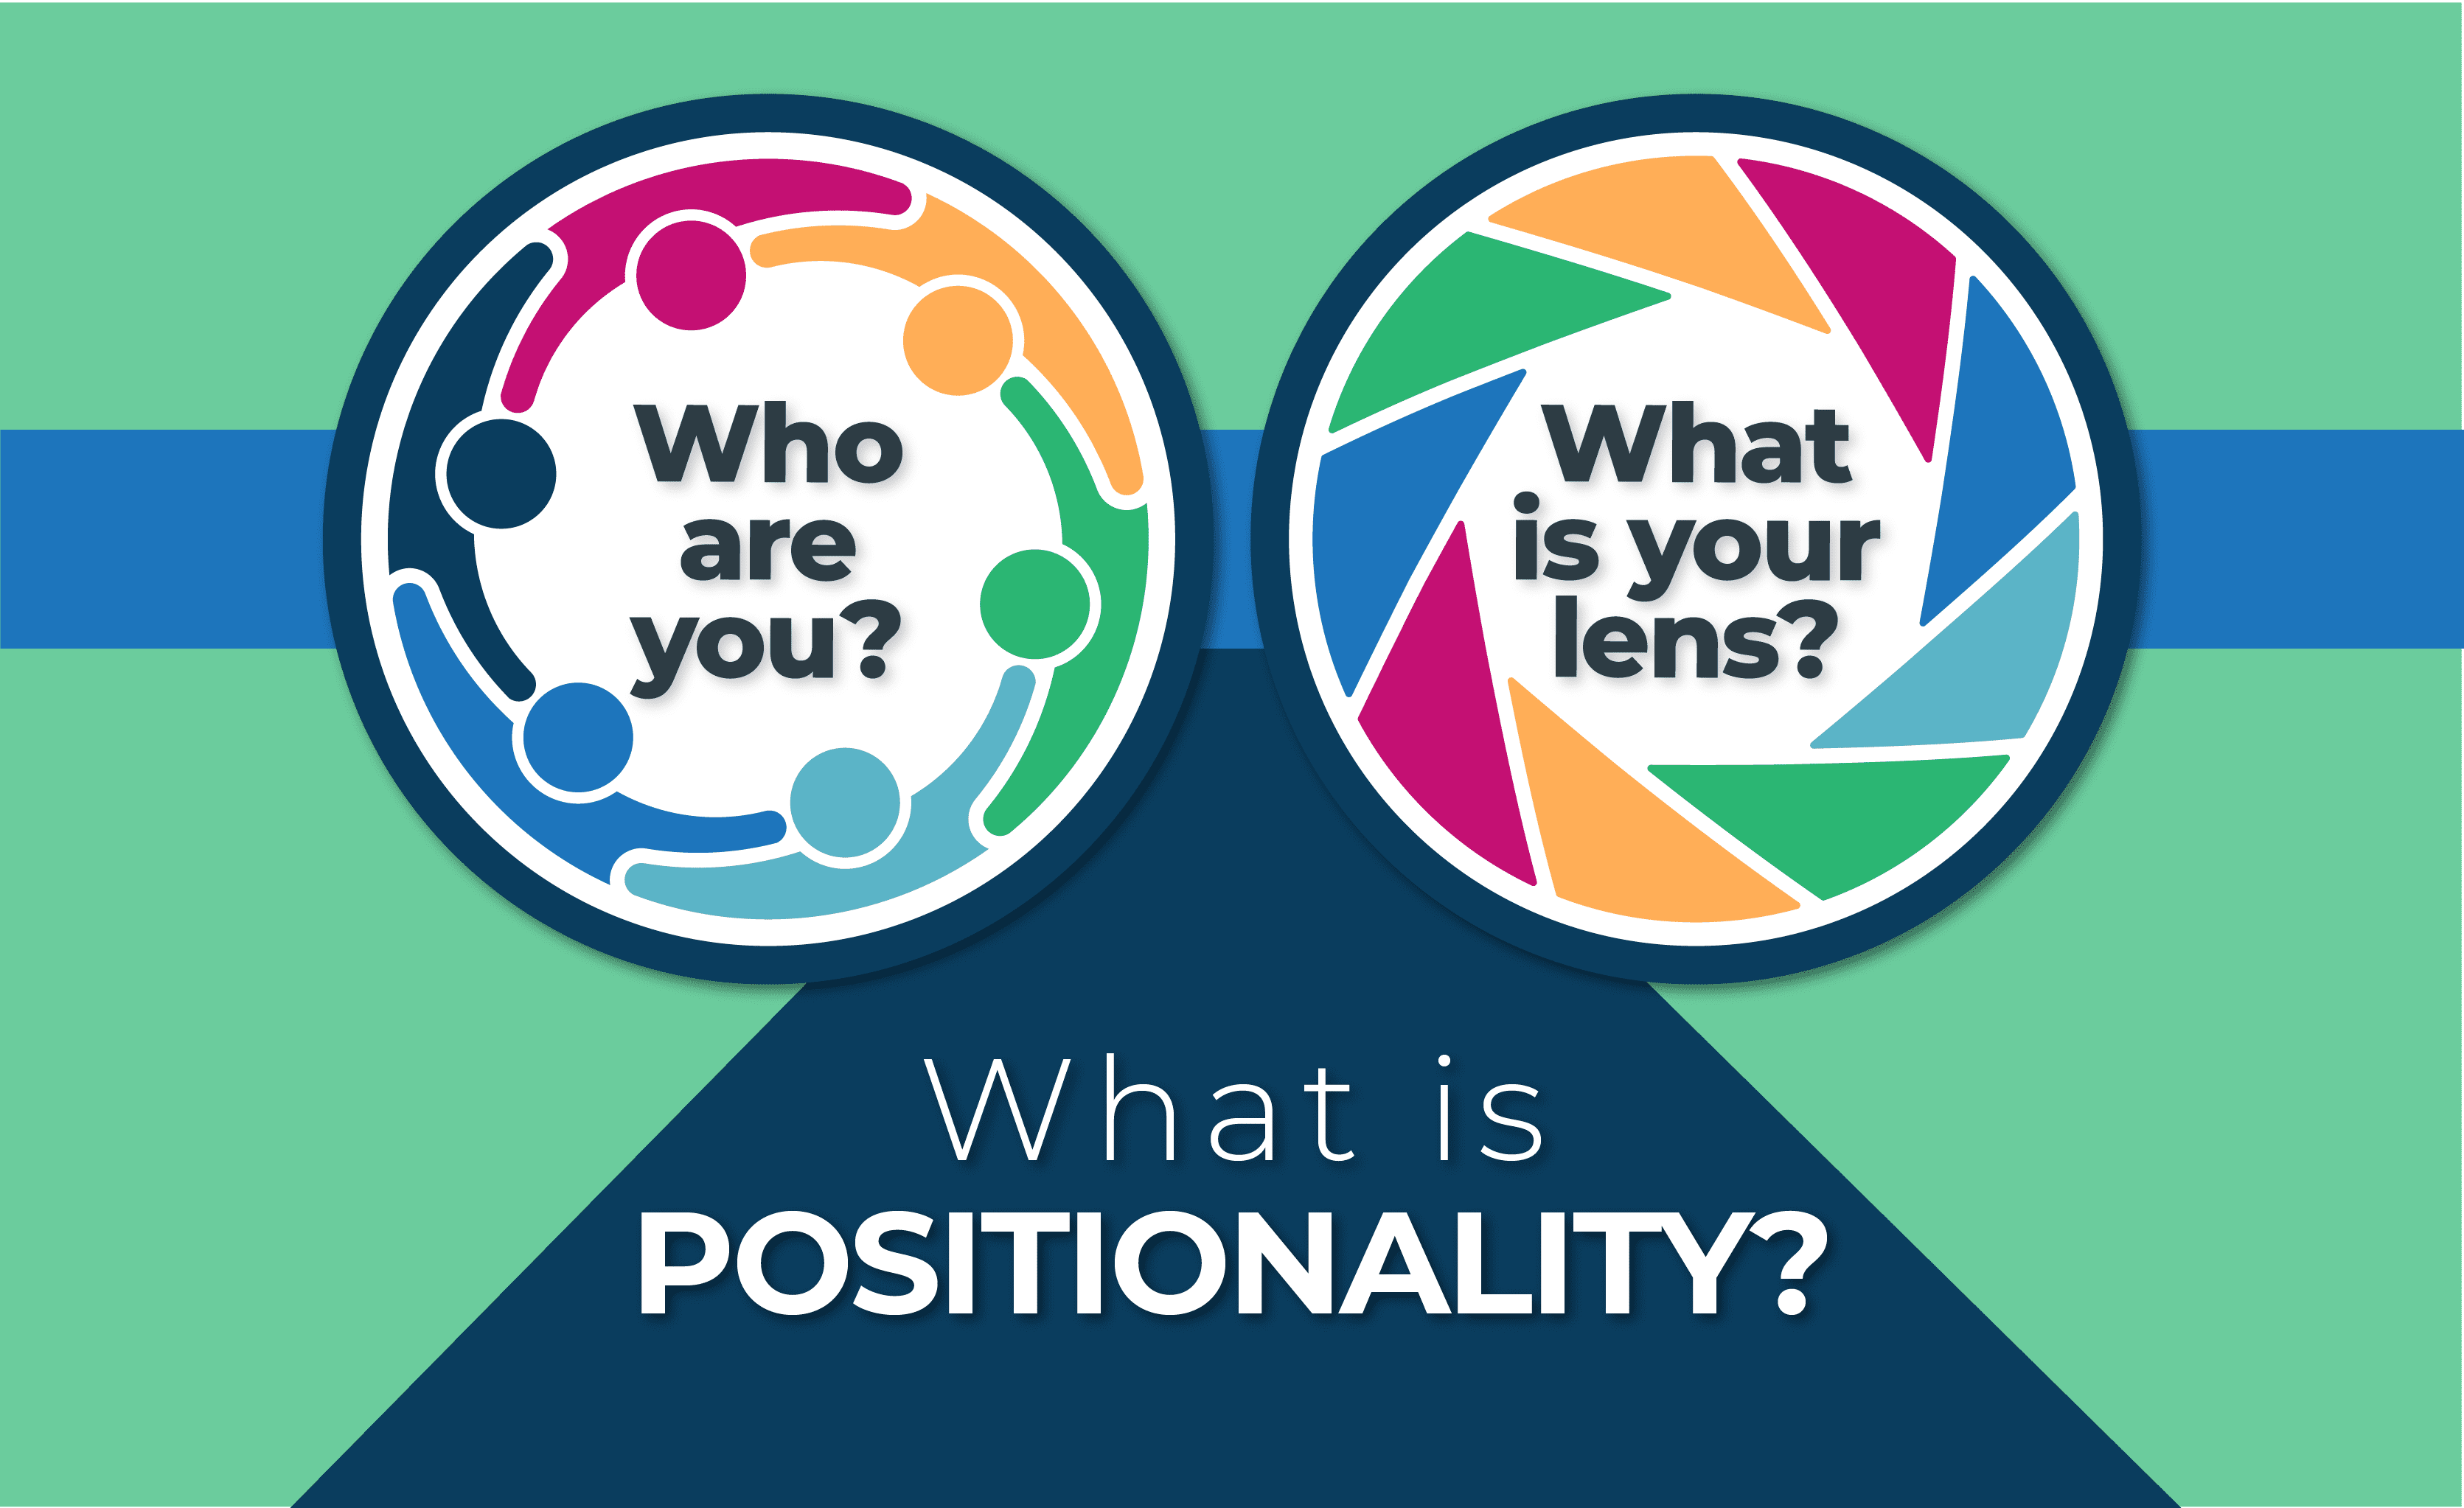 What is positionality? Free download on how to write a positionality statement